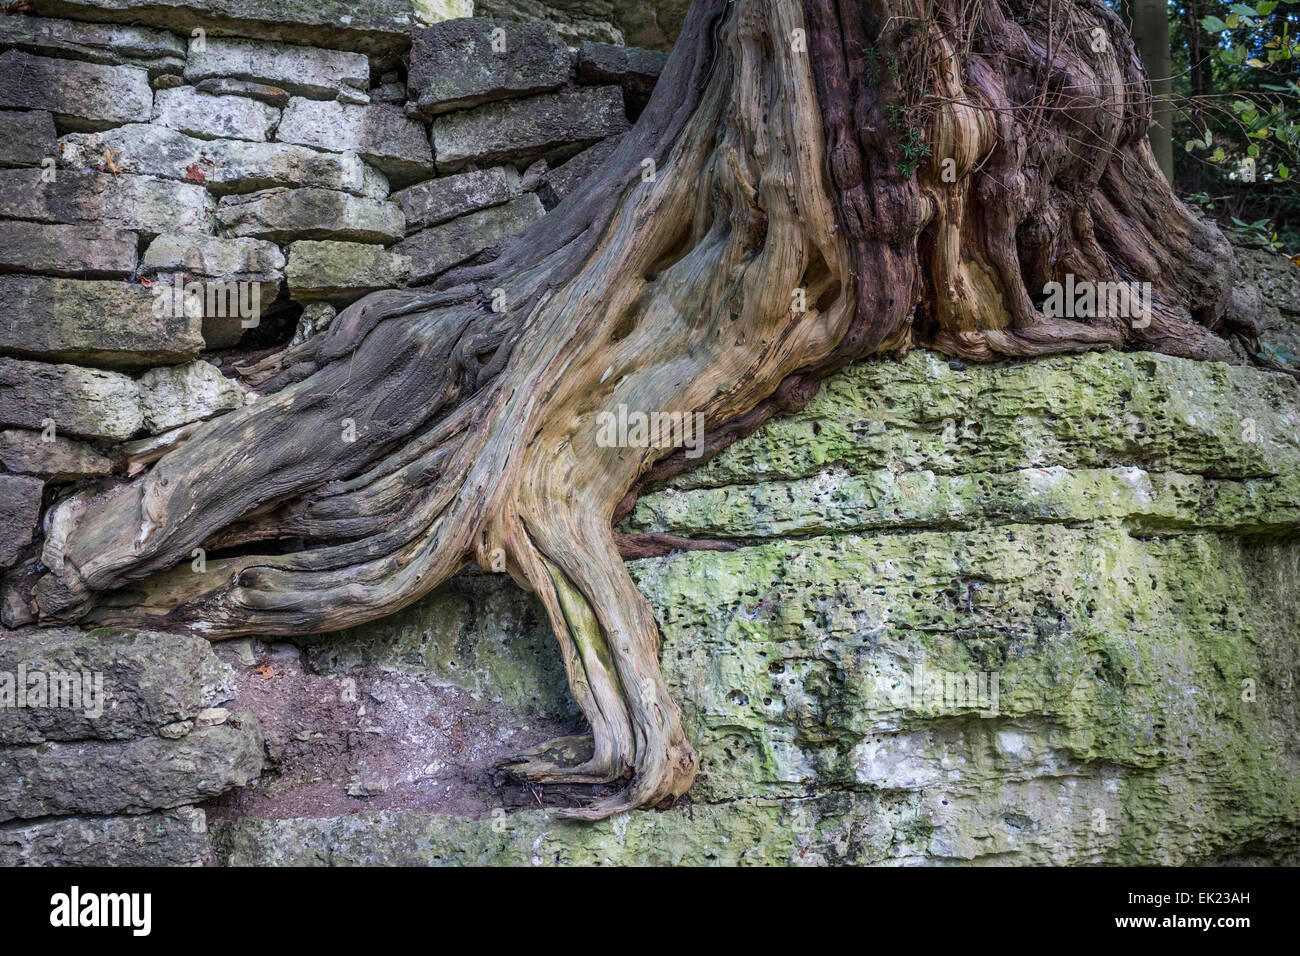 Tree root on rock in Studley Royal park, Ripon, North Yorkshire. - Stock Image